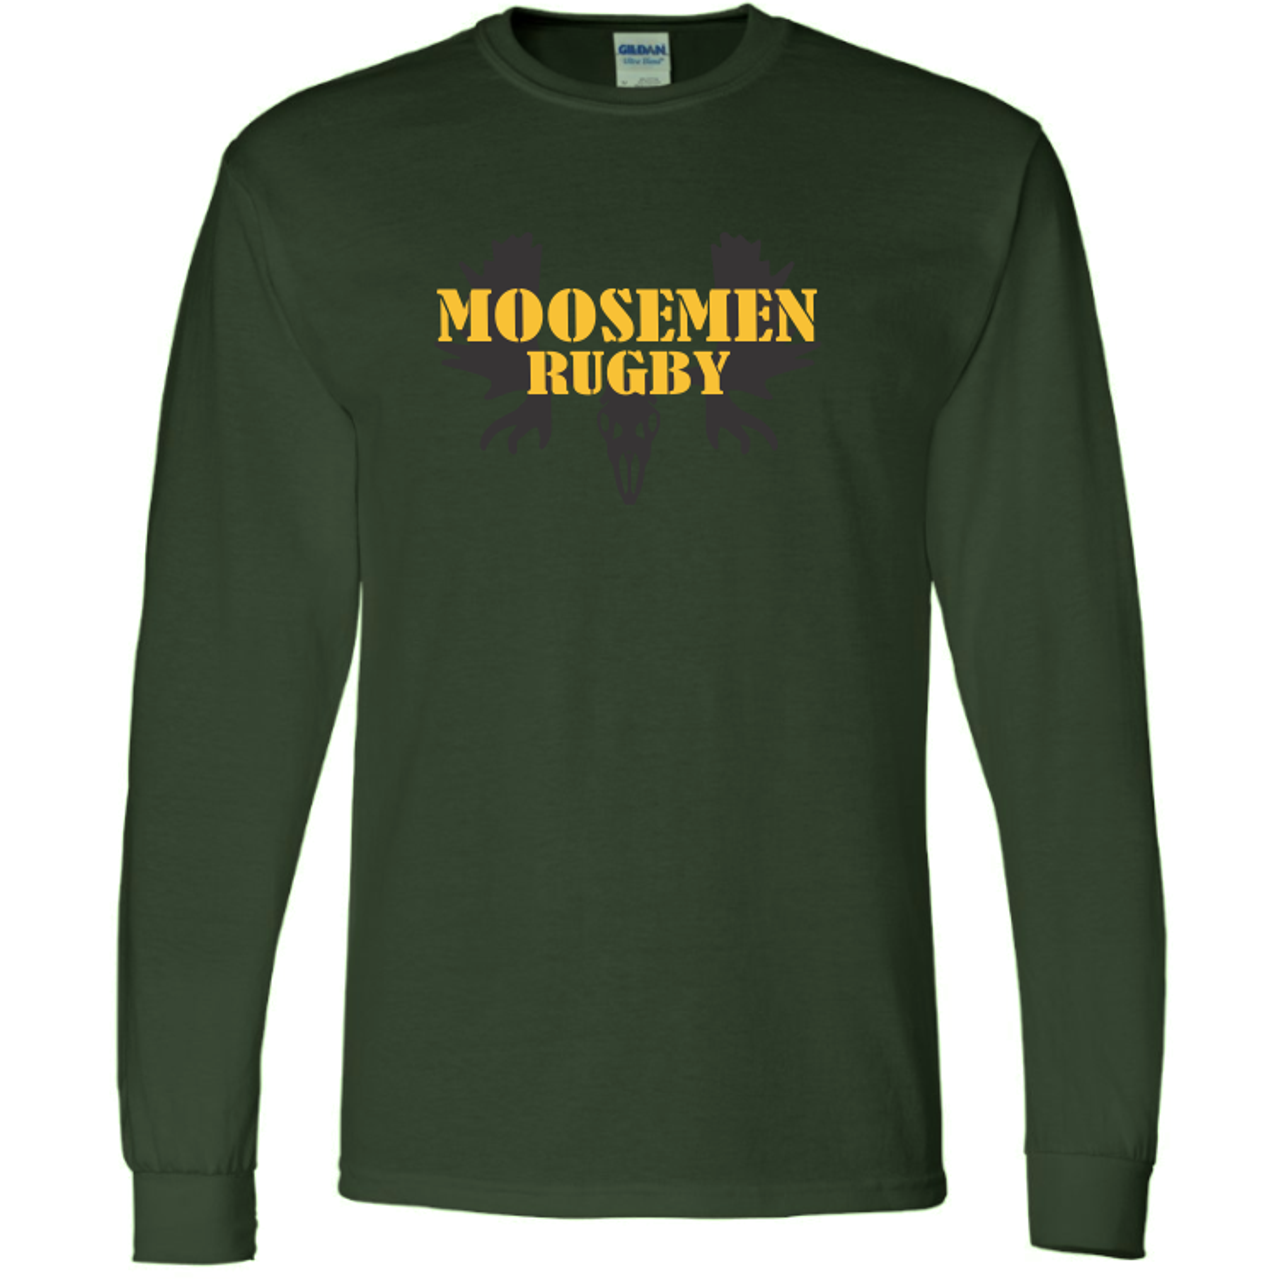 Moosemen Rugby T-Shirt